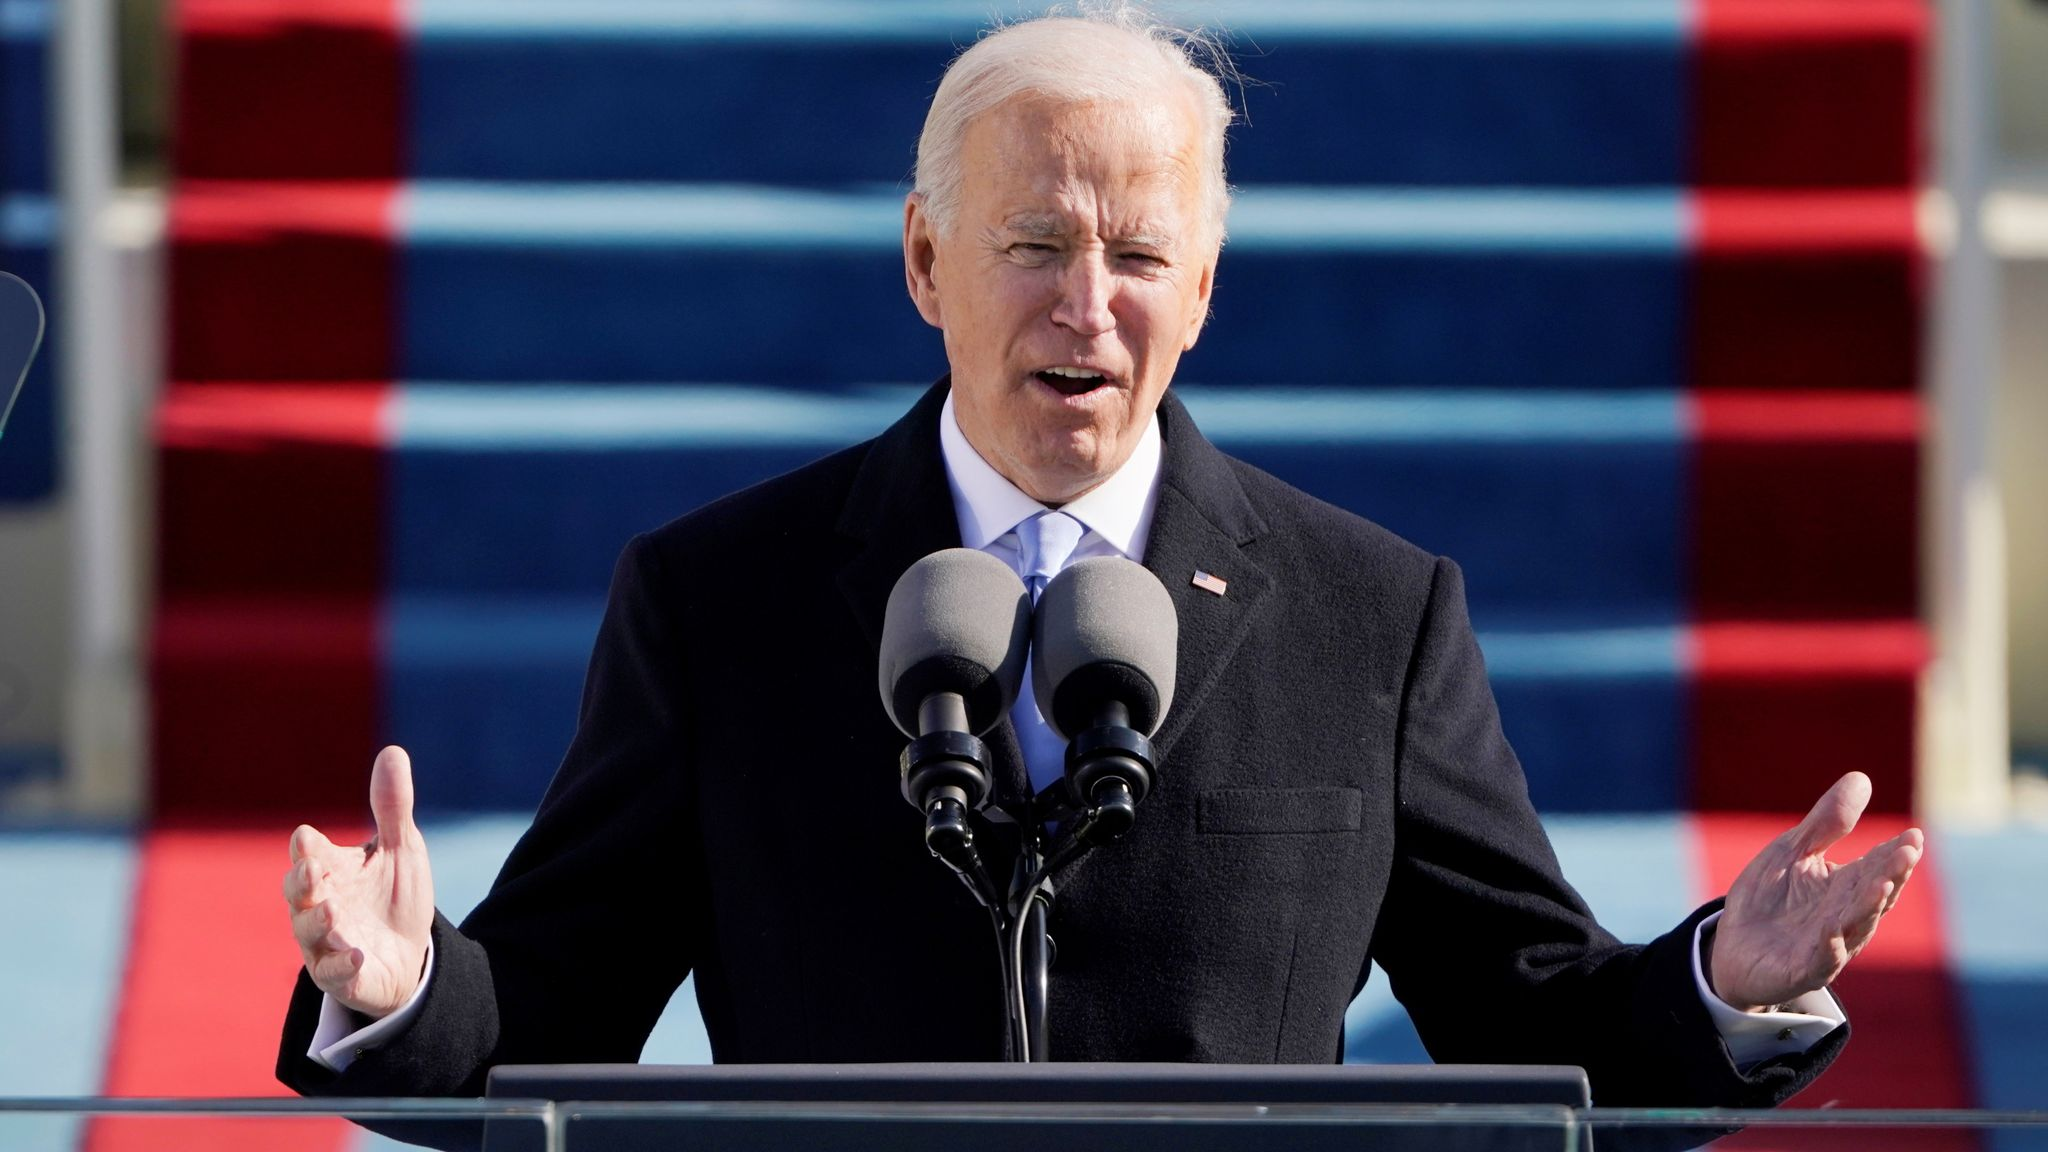 Biden inauguration news live: 'We must stop this uncivil war' - Joe Biden calls for unity in first address as president | US News | Sky News